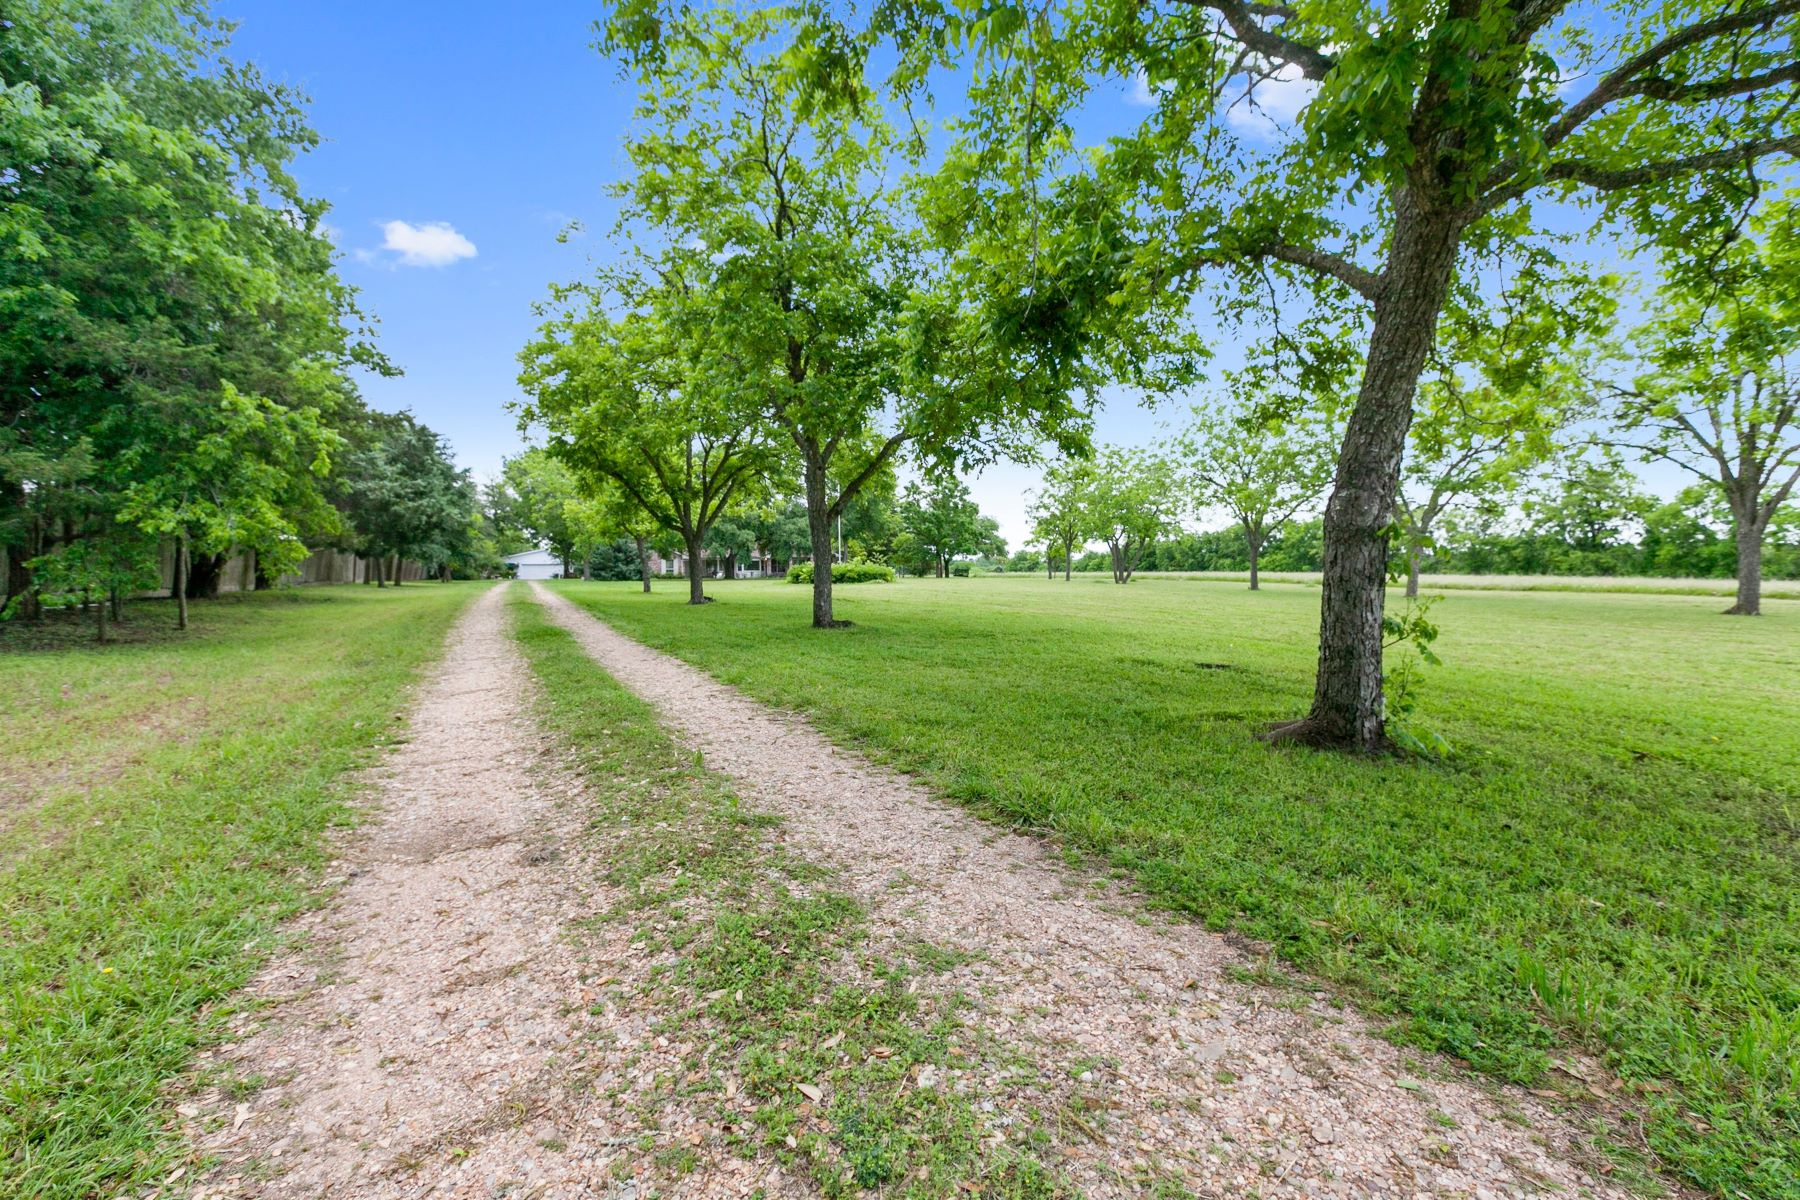 Farm / Ranch / Plantation for Sale at 2105 Texas 237, Round Top, TX 78954 Round Top, Texas 78954 United States